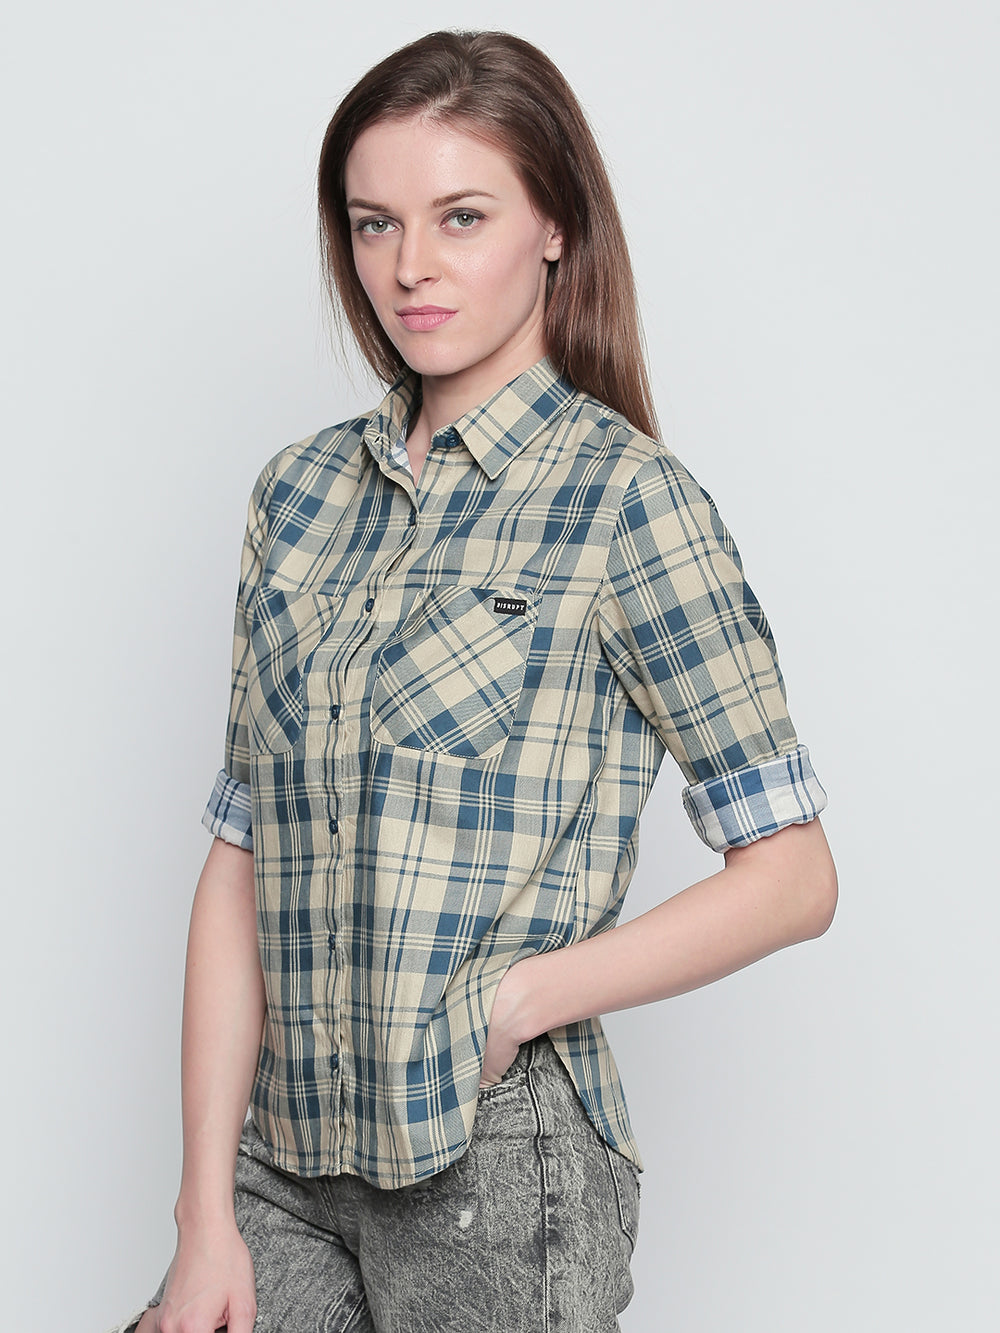 Off White N Turquoise Cotton Fabric Checkered Regular Fit Shirt